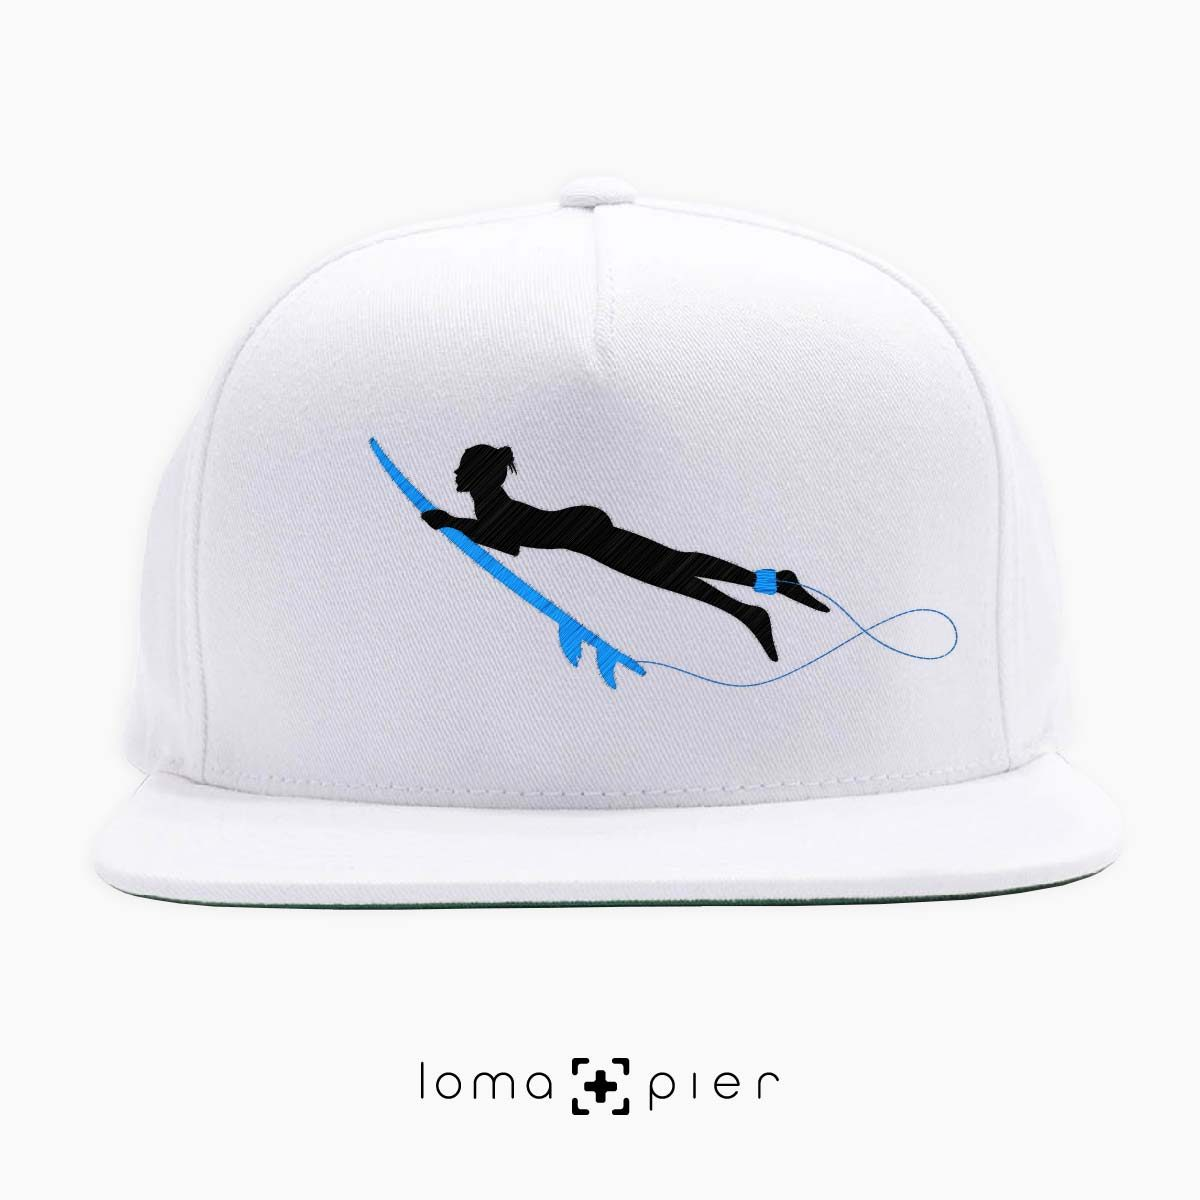 SURFING NAKED nude beach hat in white by loma+pier hat store